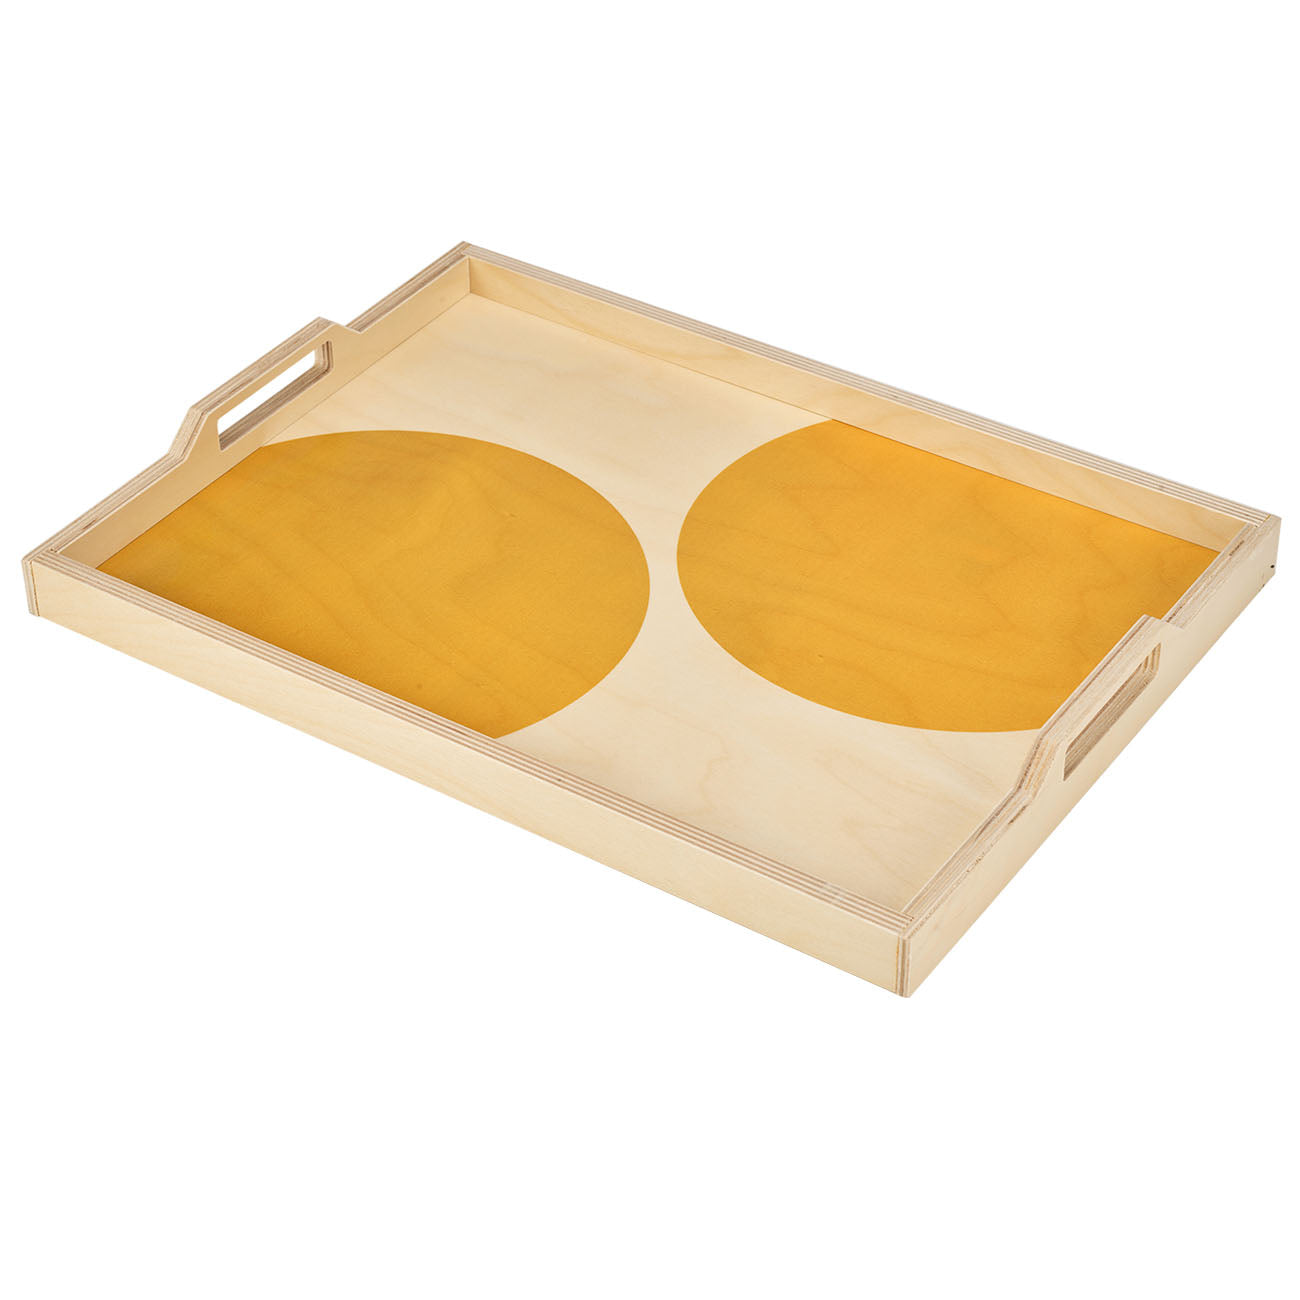 yellow dot serving tray - NEW for Spring 2019!